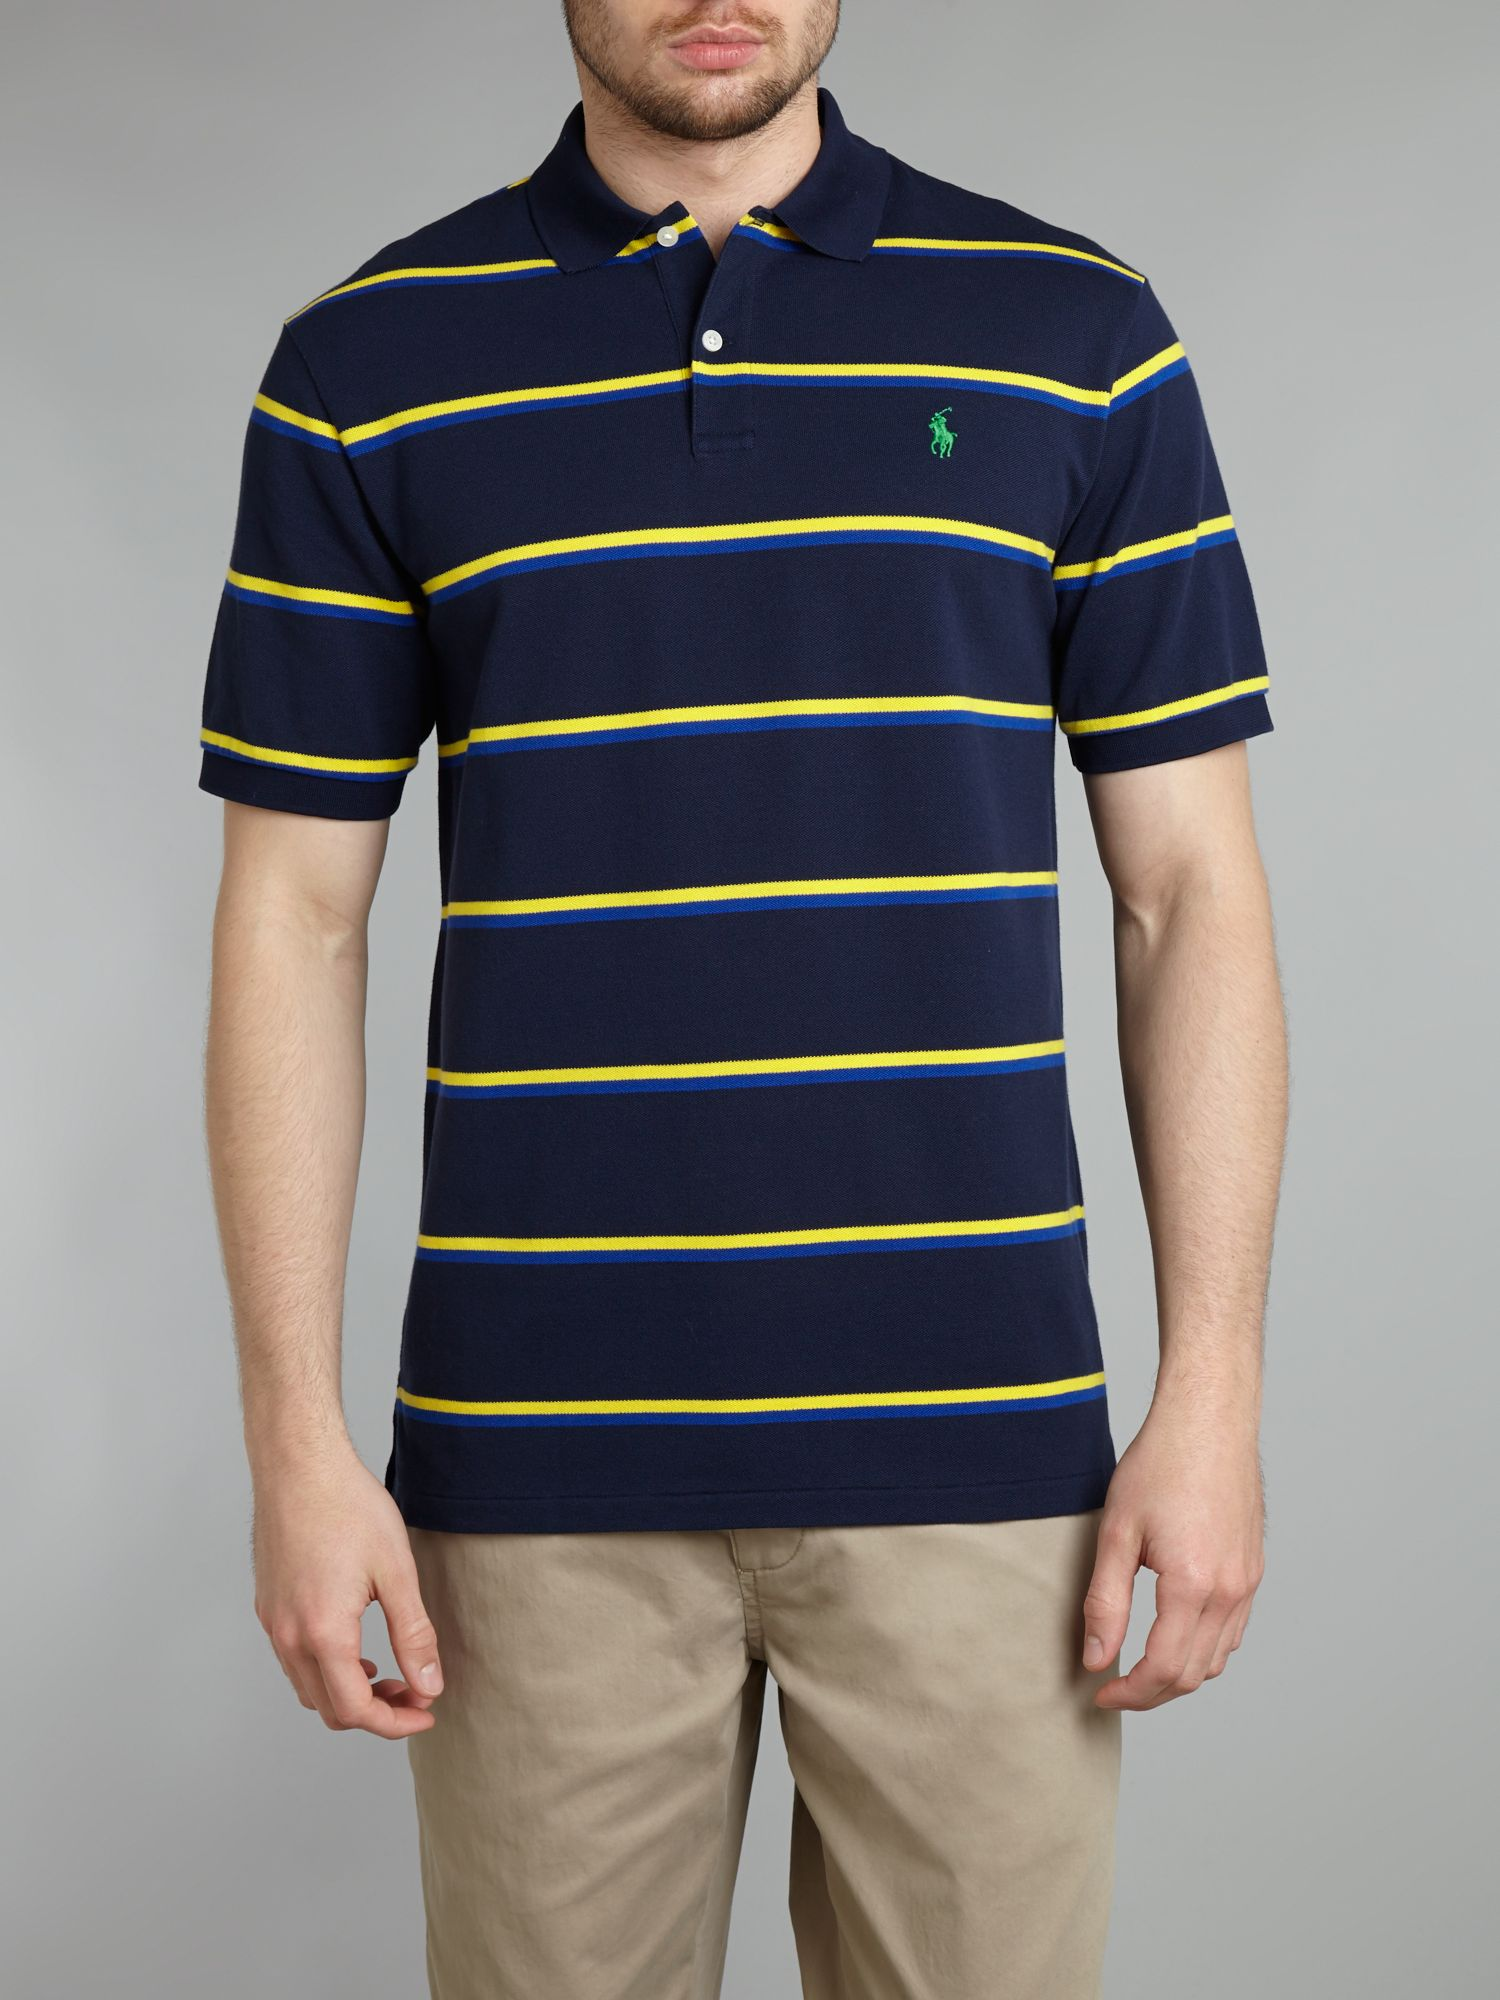 Classic striped polo shirt